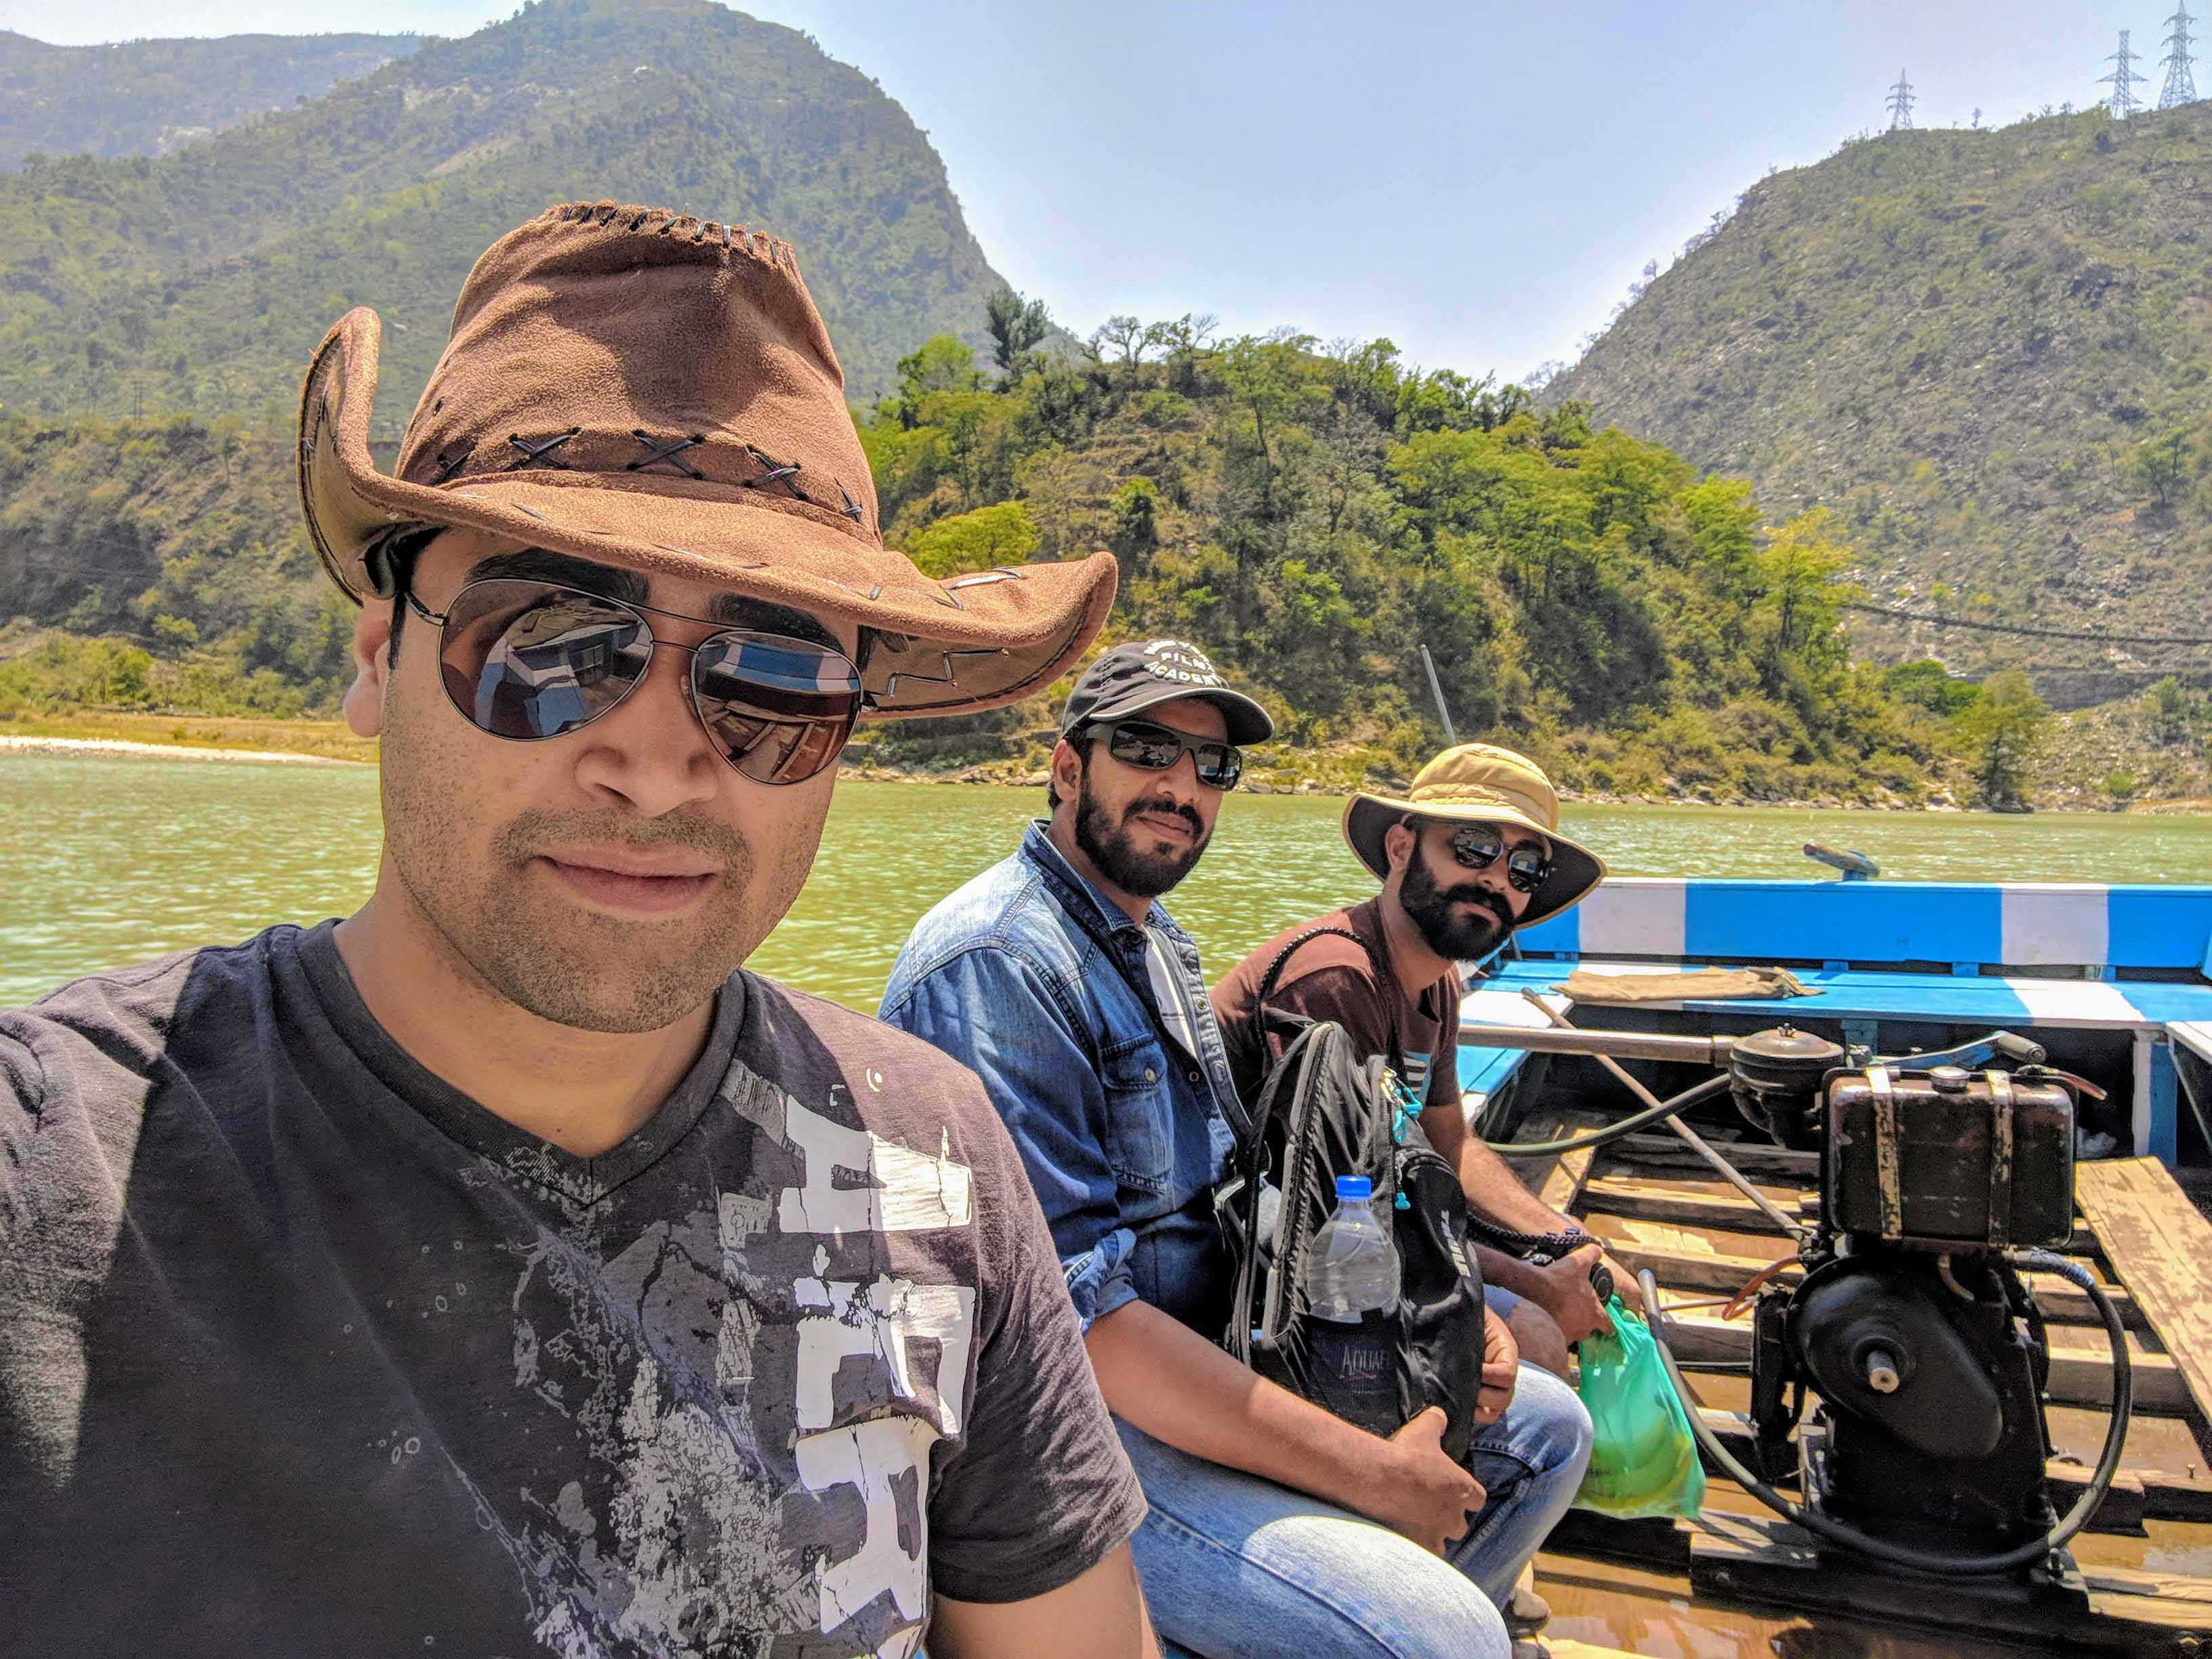 Goodachari shoots near the Himalayas